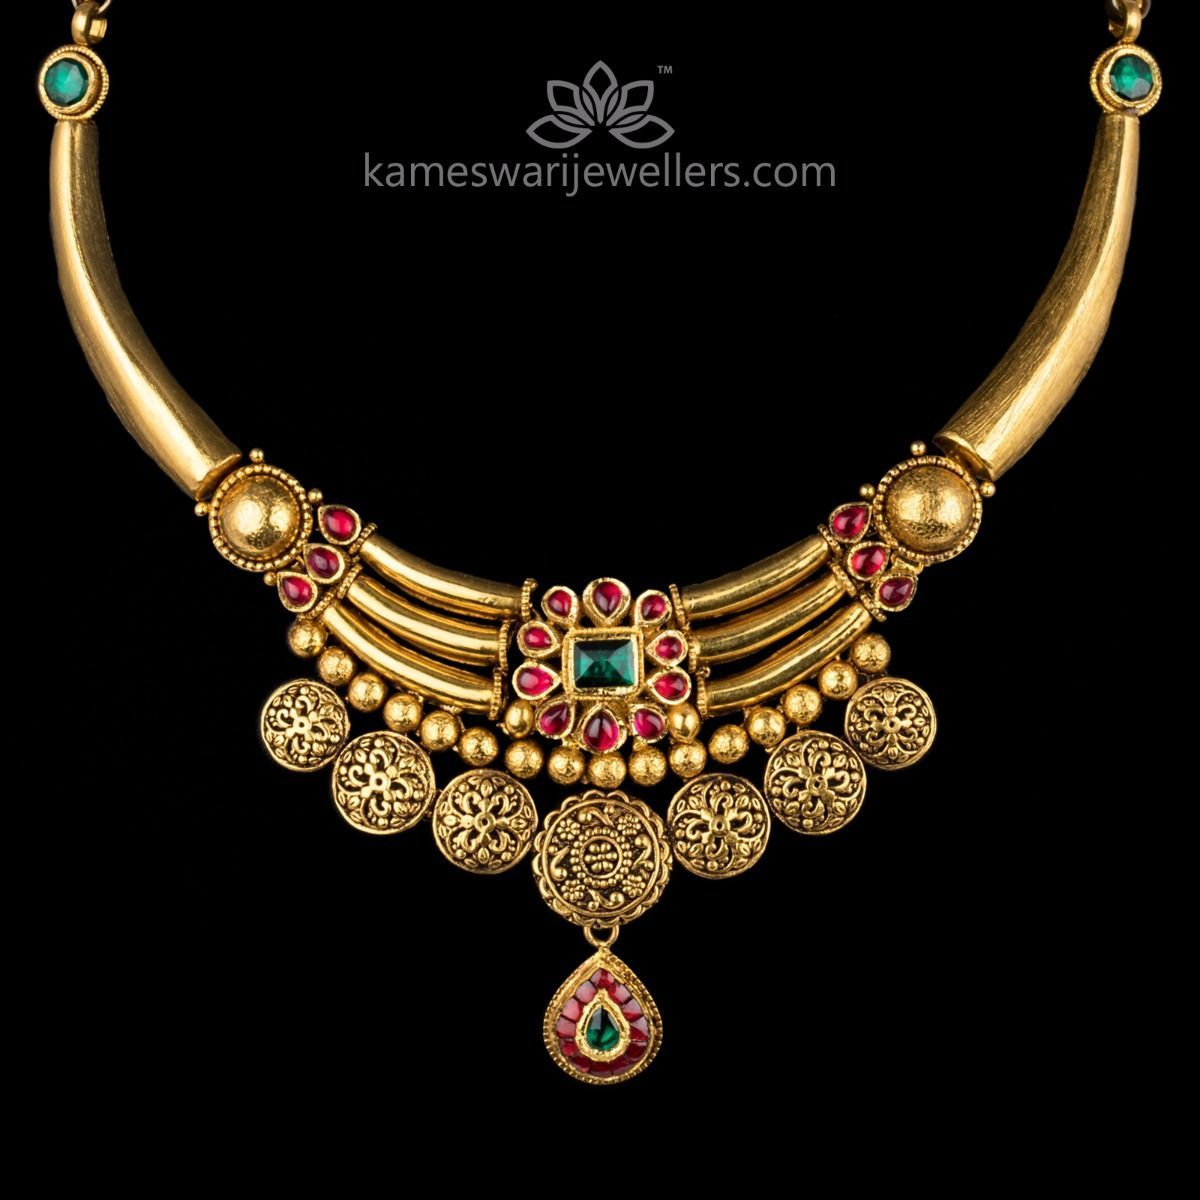 30++ How to ship jewelry from india to usa ideas in 2021